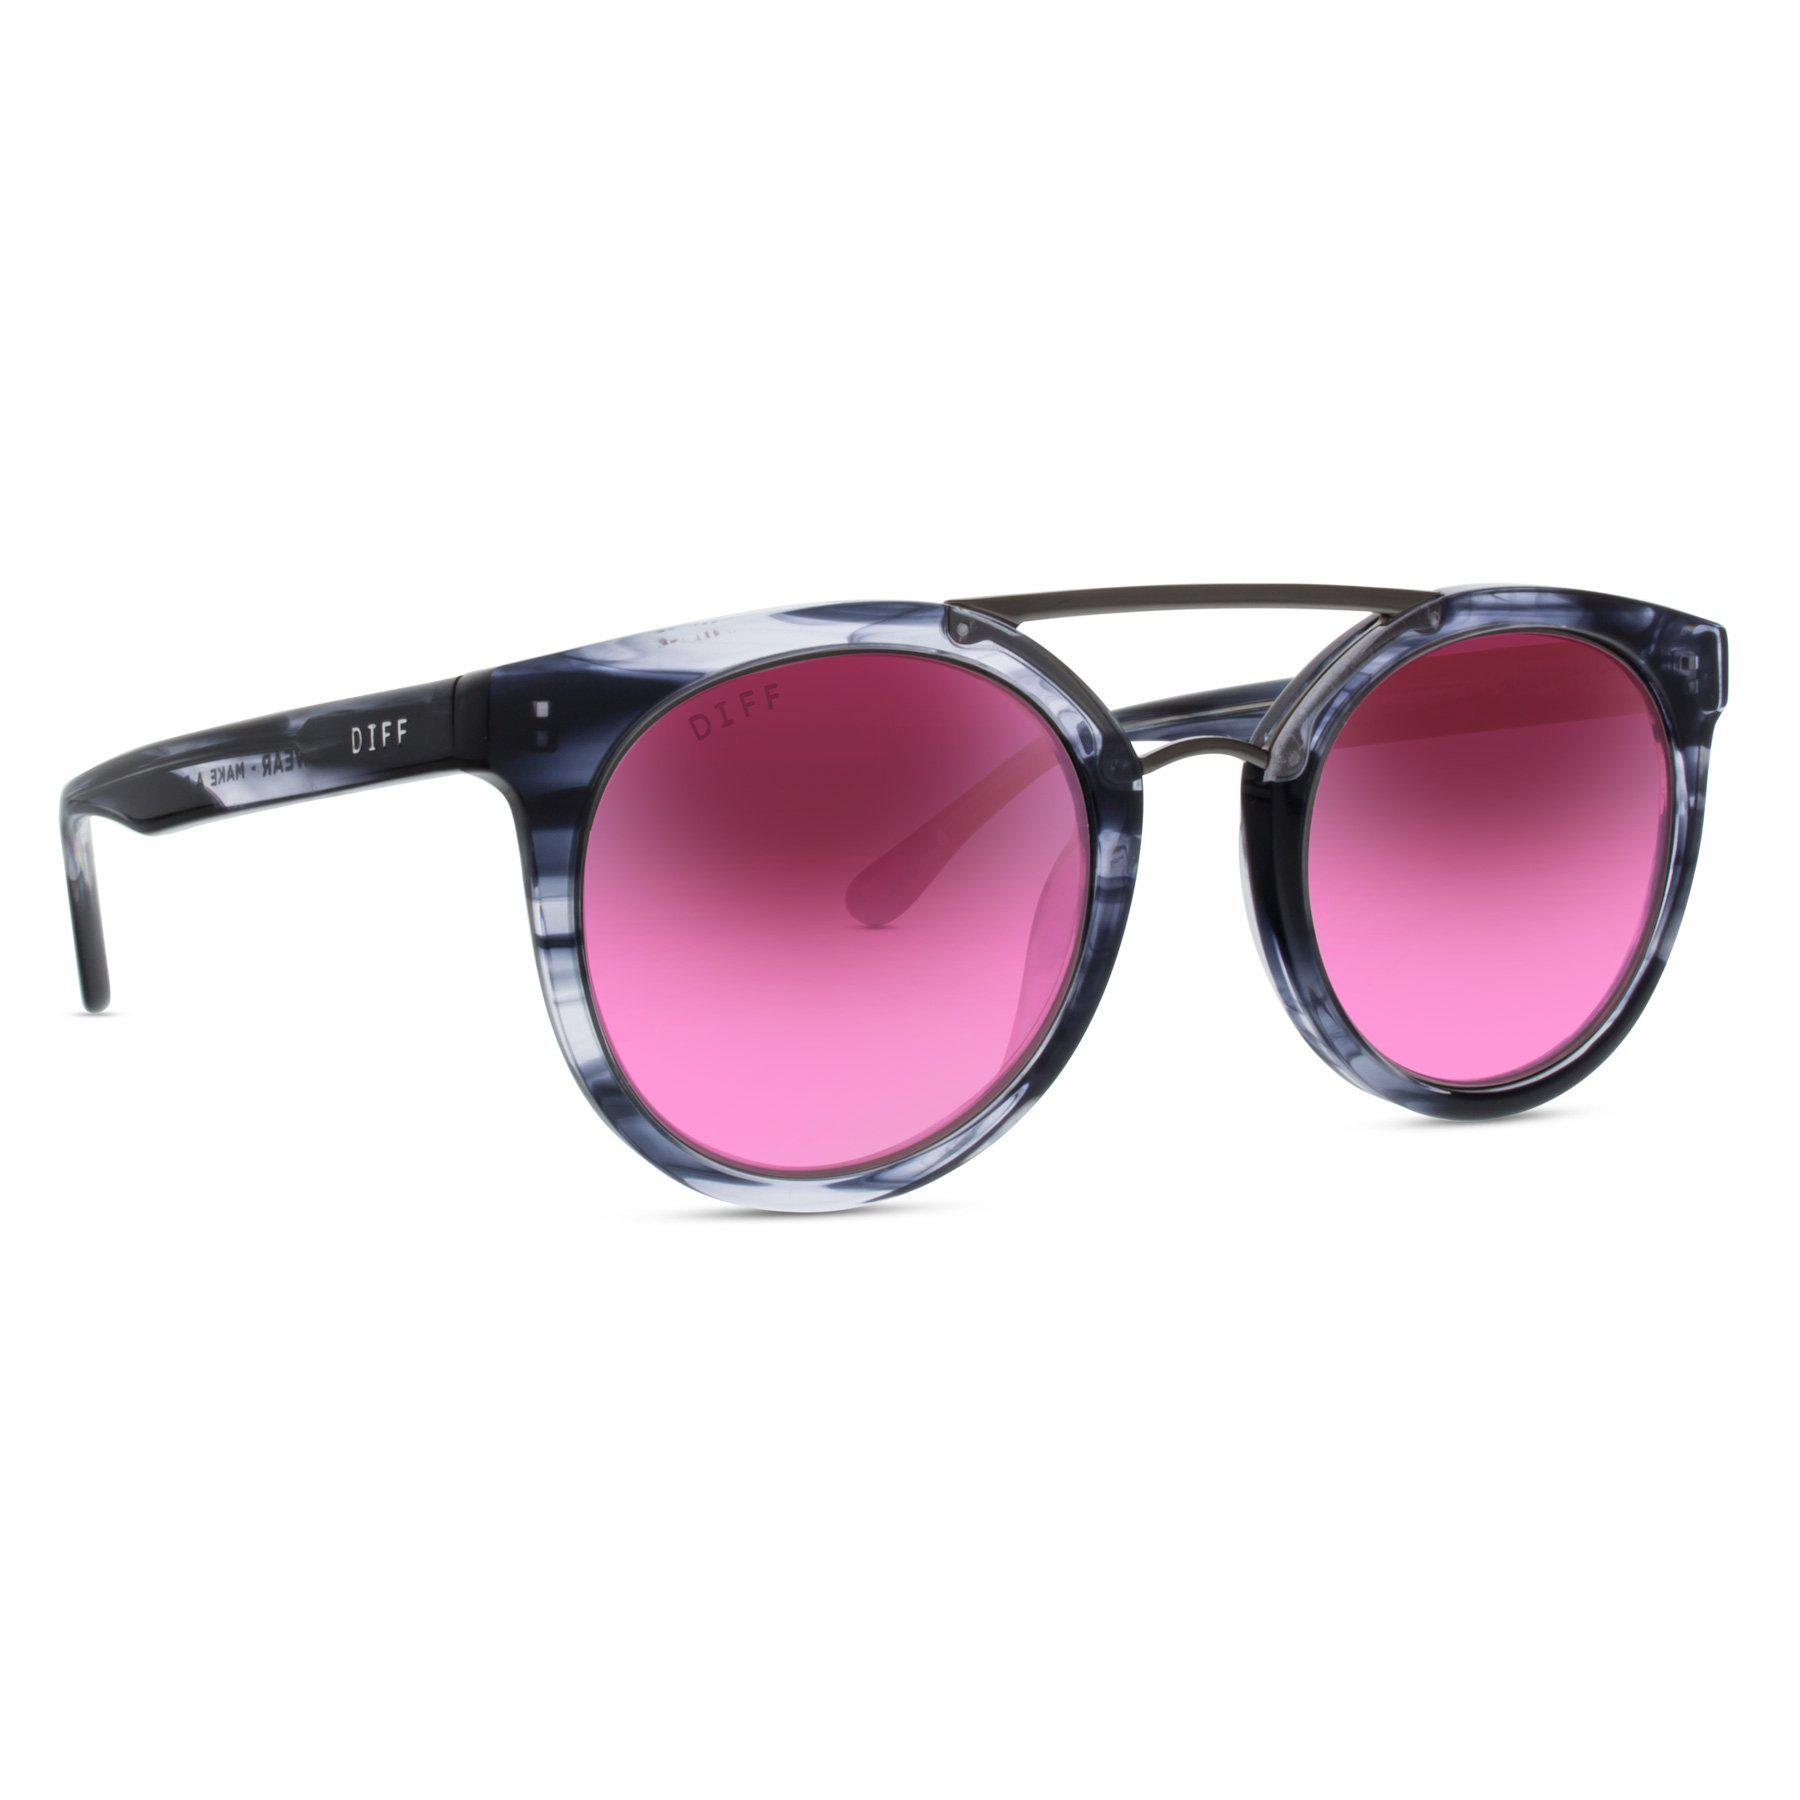 1791bafe19 Lyst - DIFF Astro - Grey Slate + Rose Gradient + Polarized in Gray